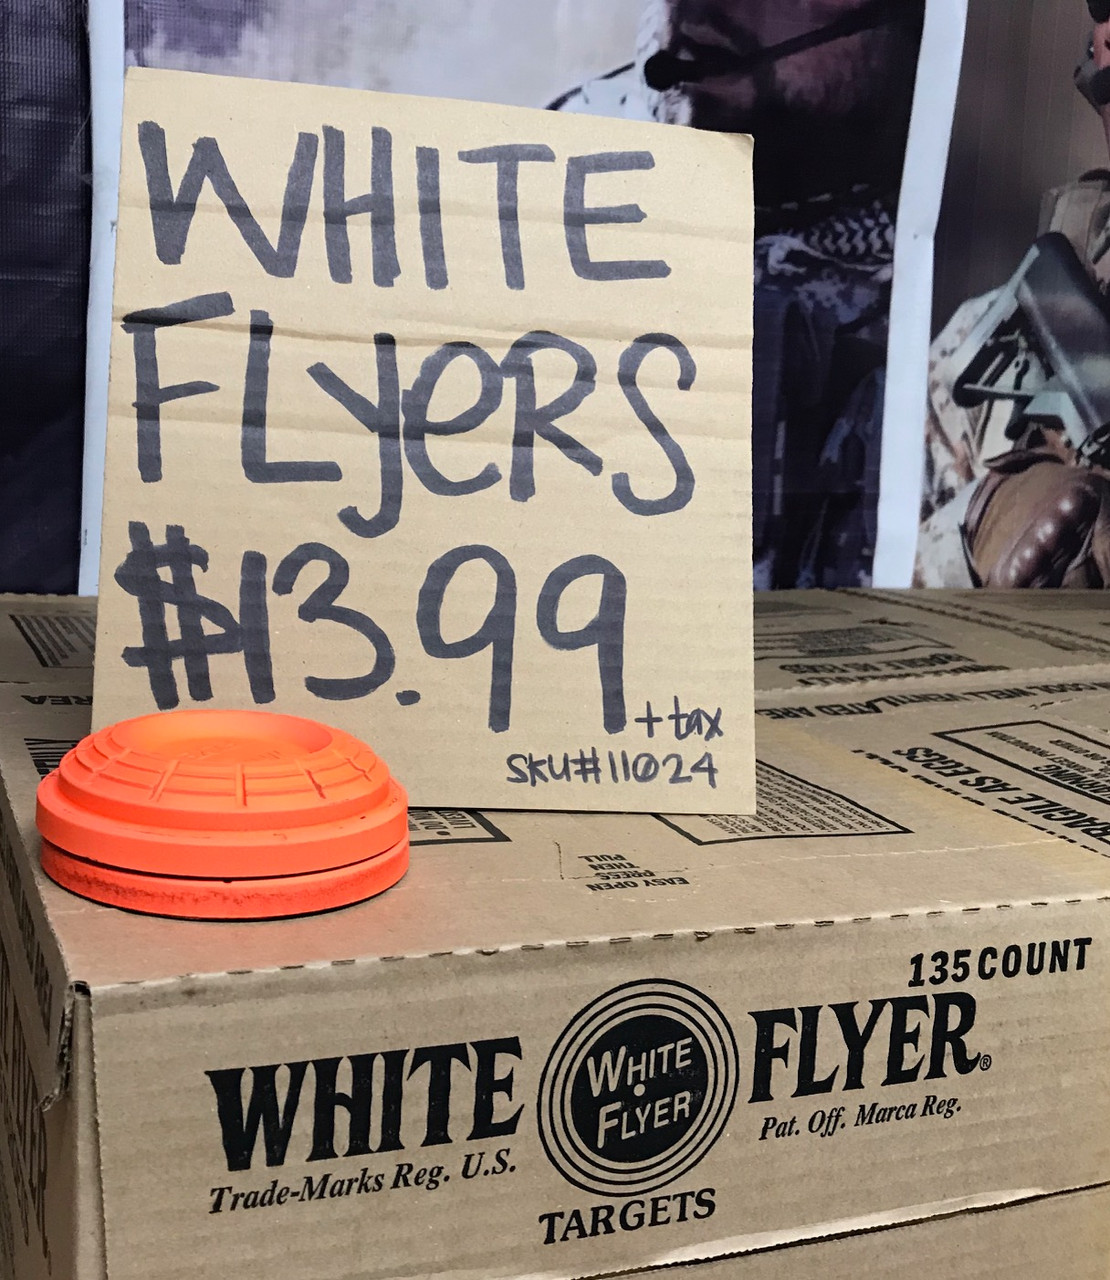 WHITE FLYERS CLAY TARGETS - IN STORE PURCHASE ONLY-135ct.